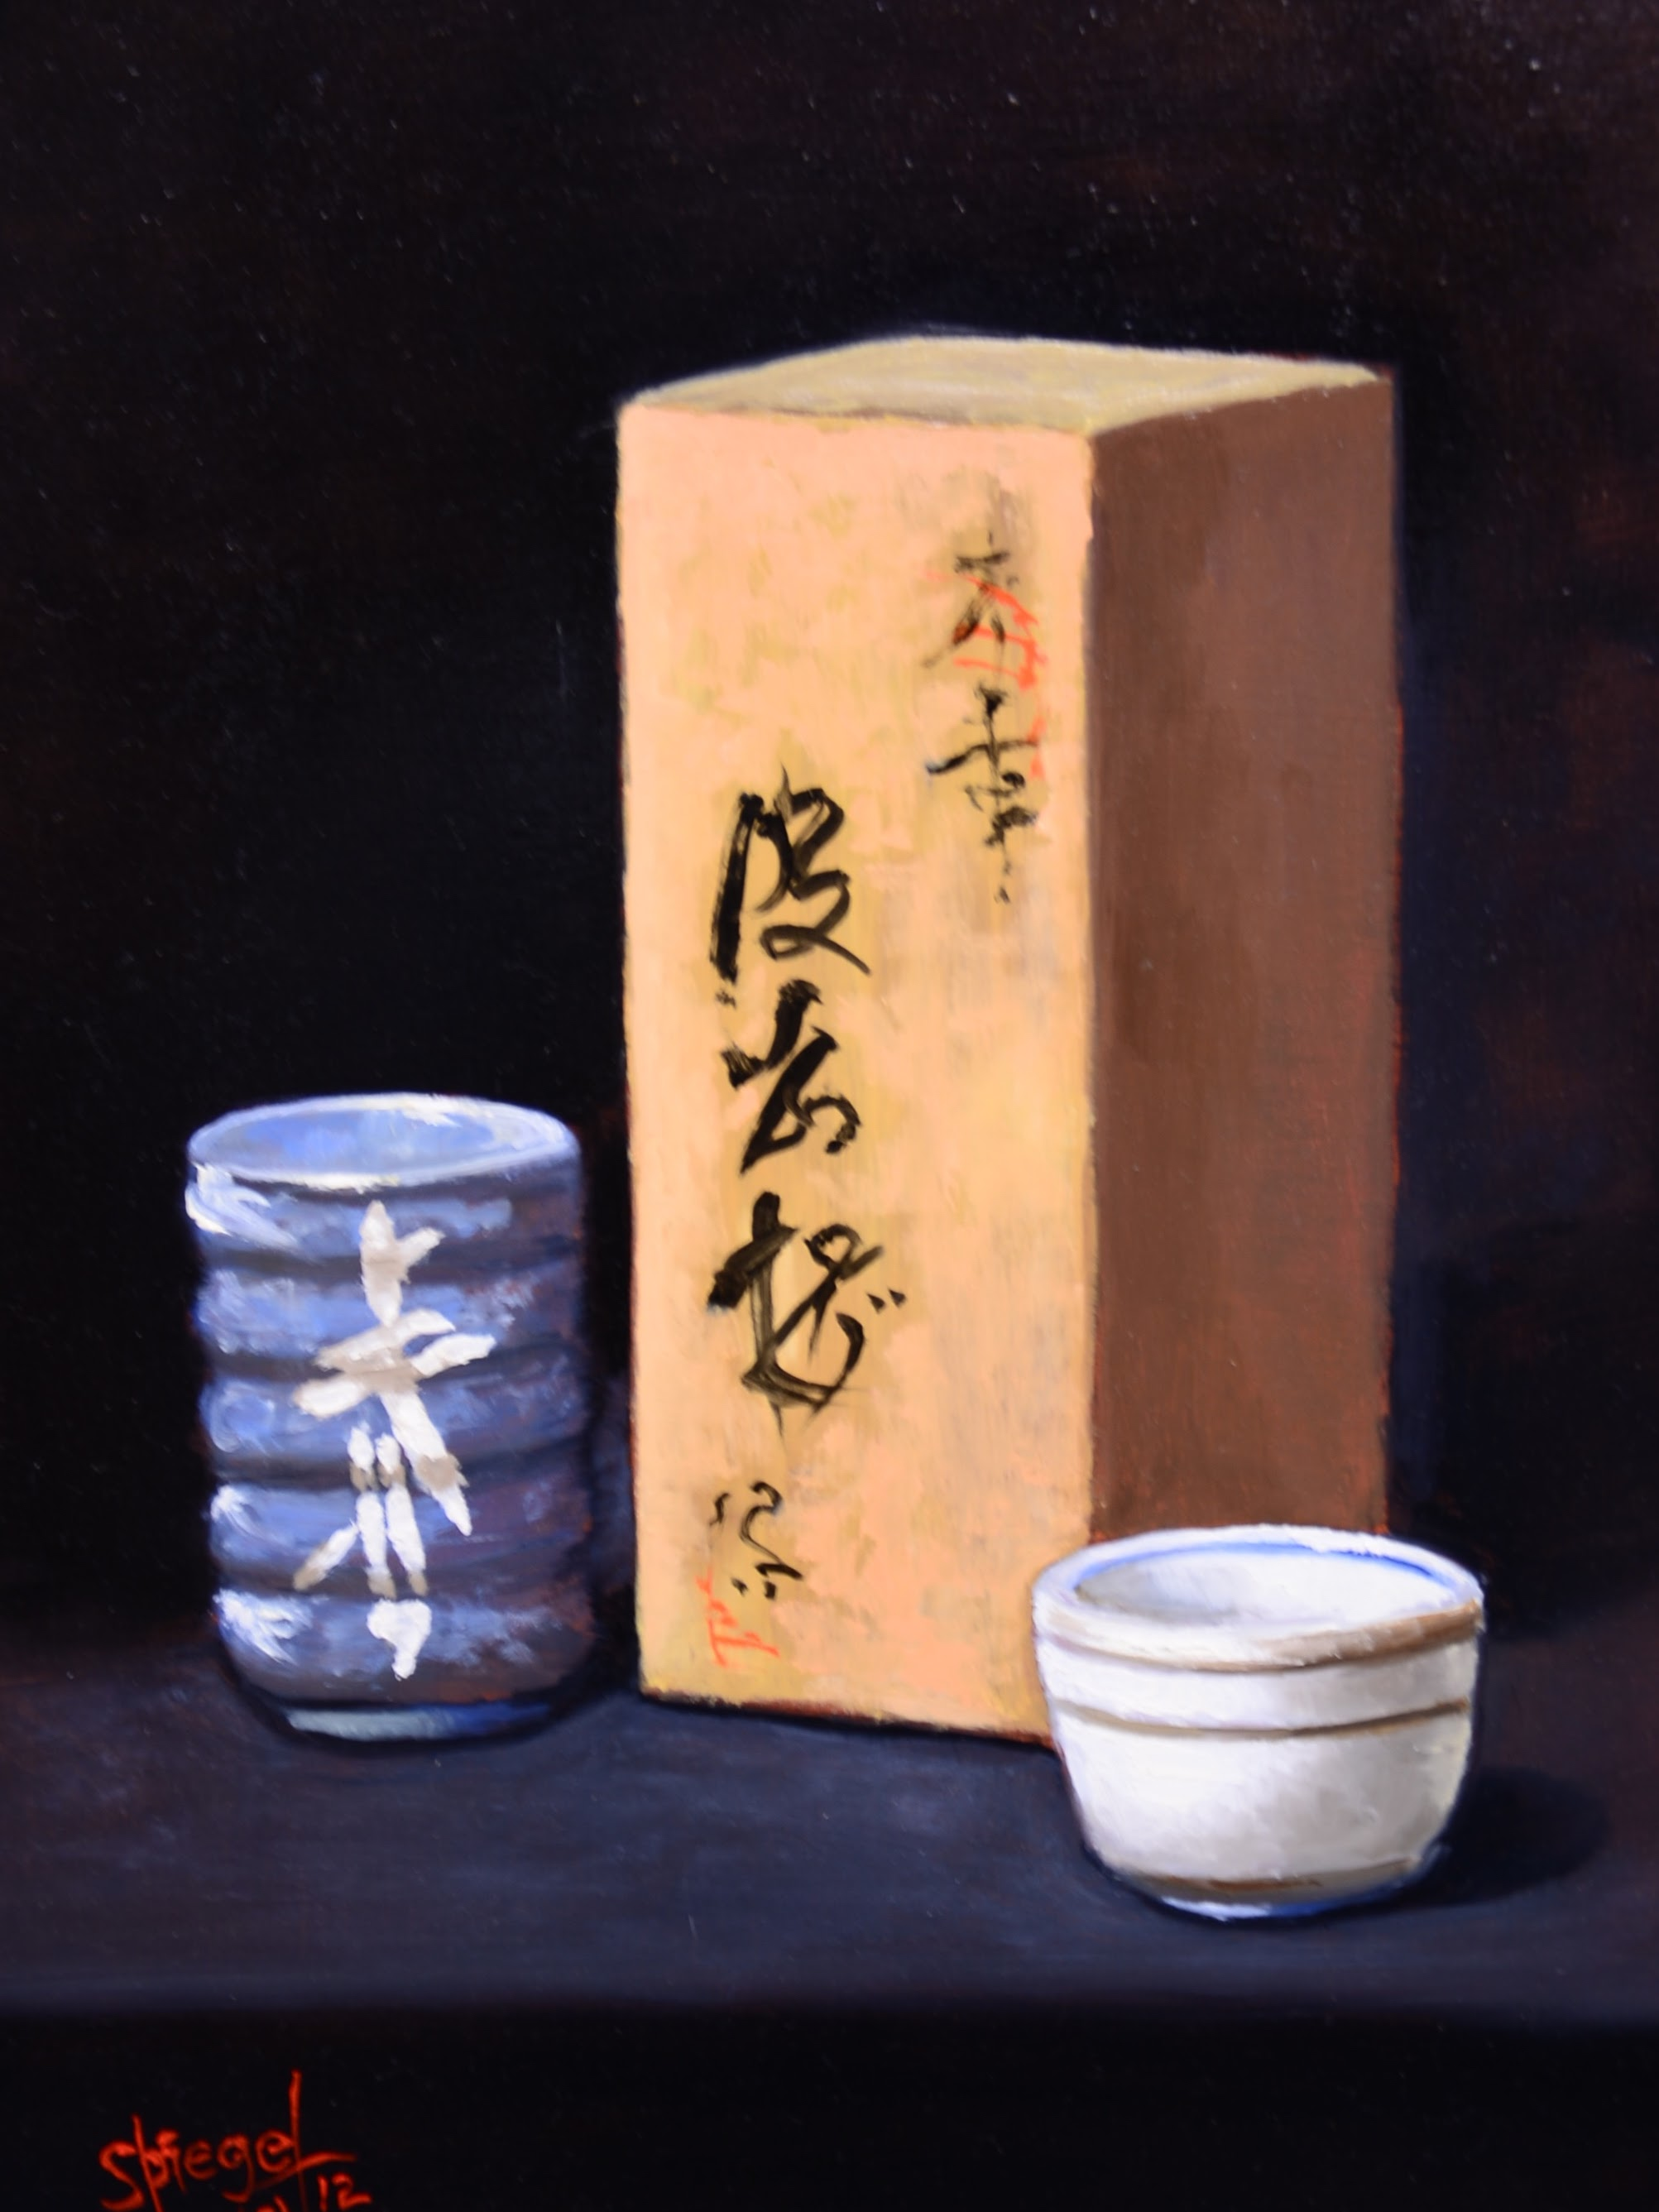 Japanese Tea Cups and Giftbox by Eric Spiegel